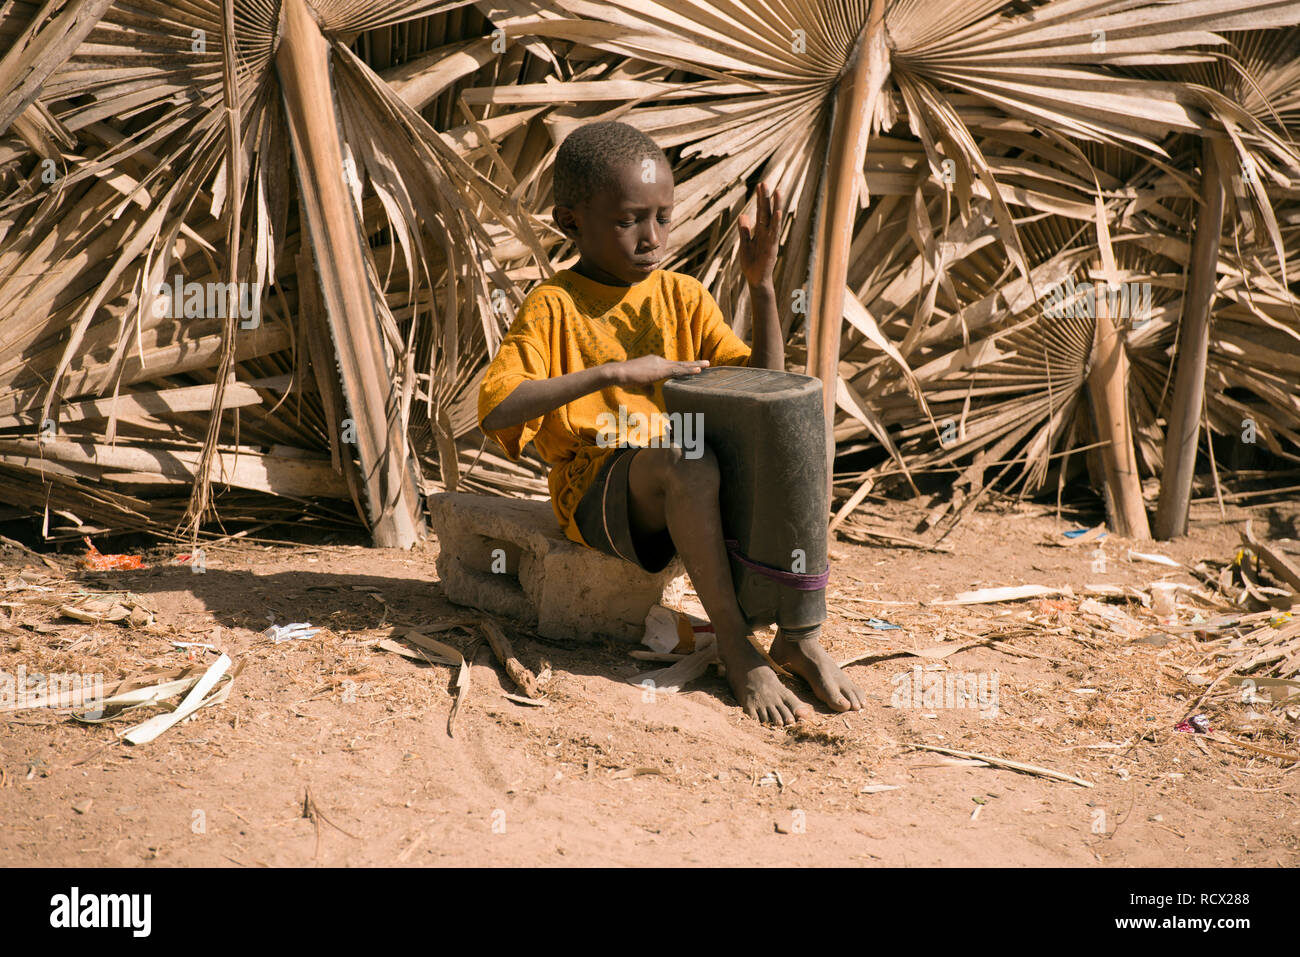 A young indigenous Jola tribe boy plays a drum during a traditional ritual in the village of Berending, The Gambia, West Africa. - Stock Image